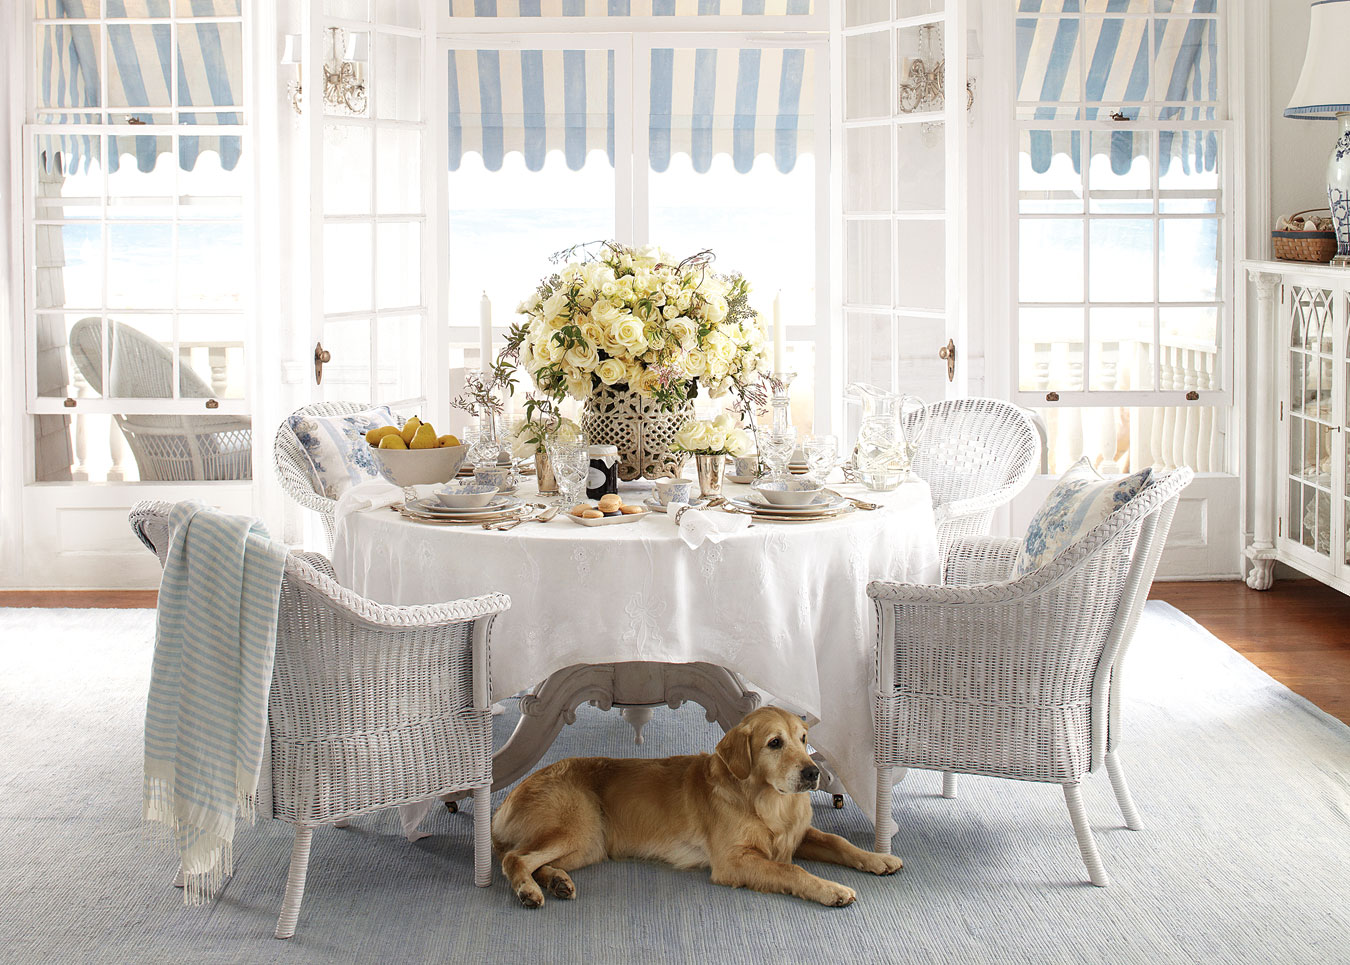 A well-appointed table by Ralph Lauren.